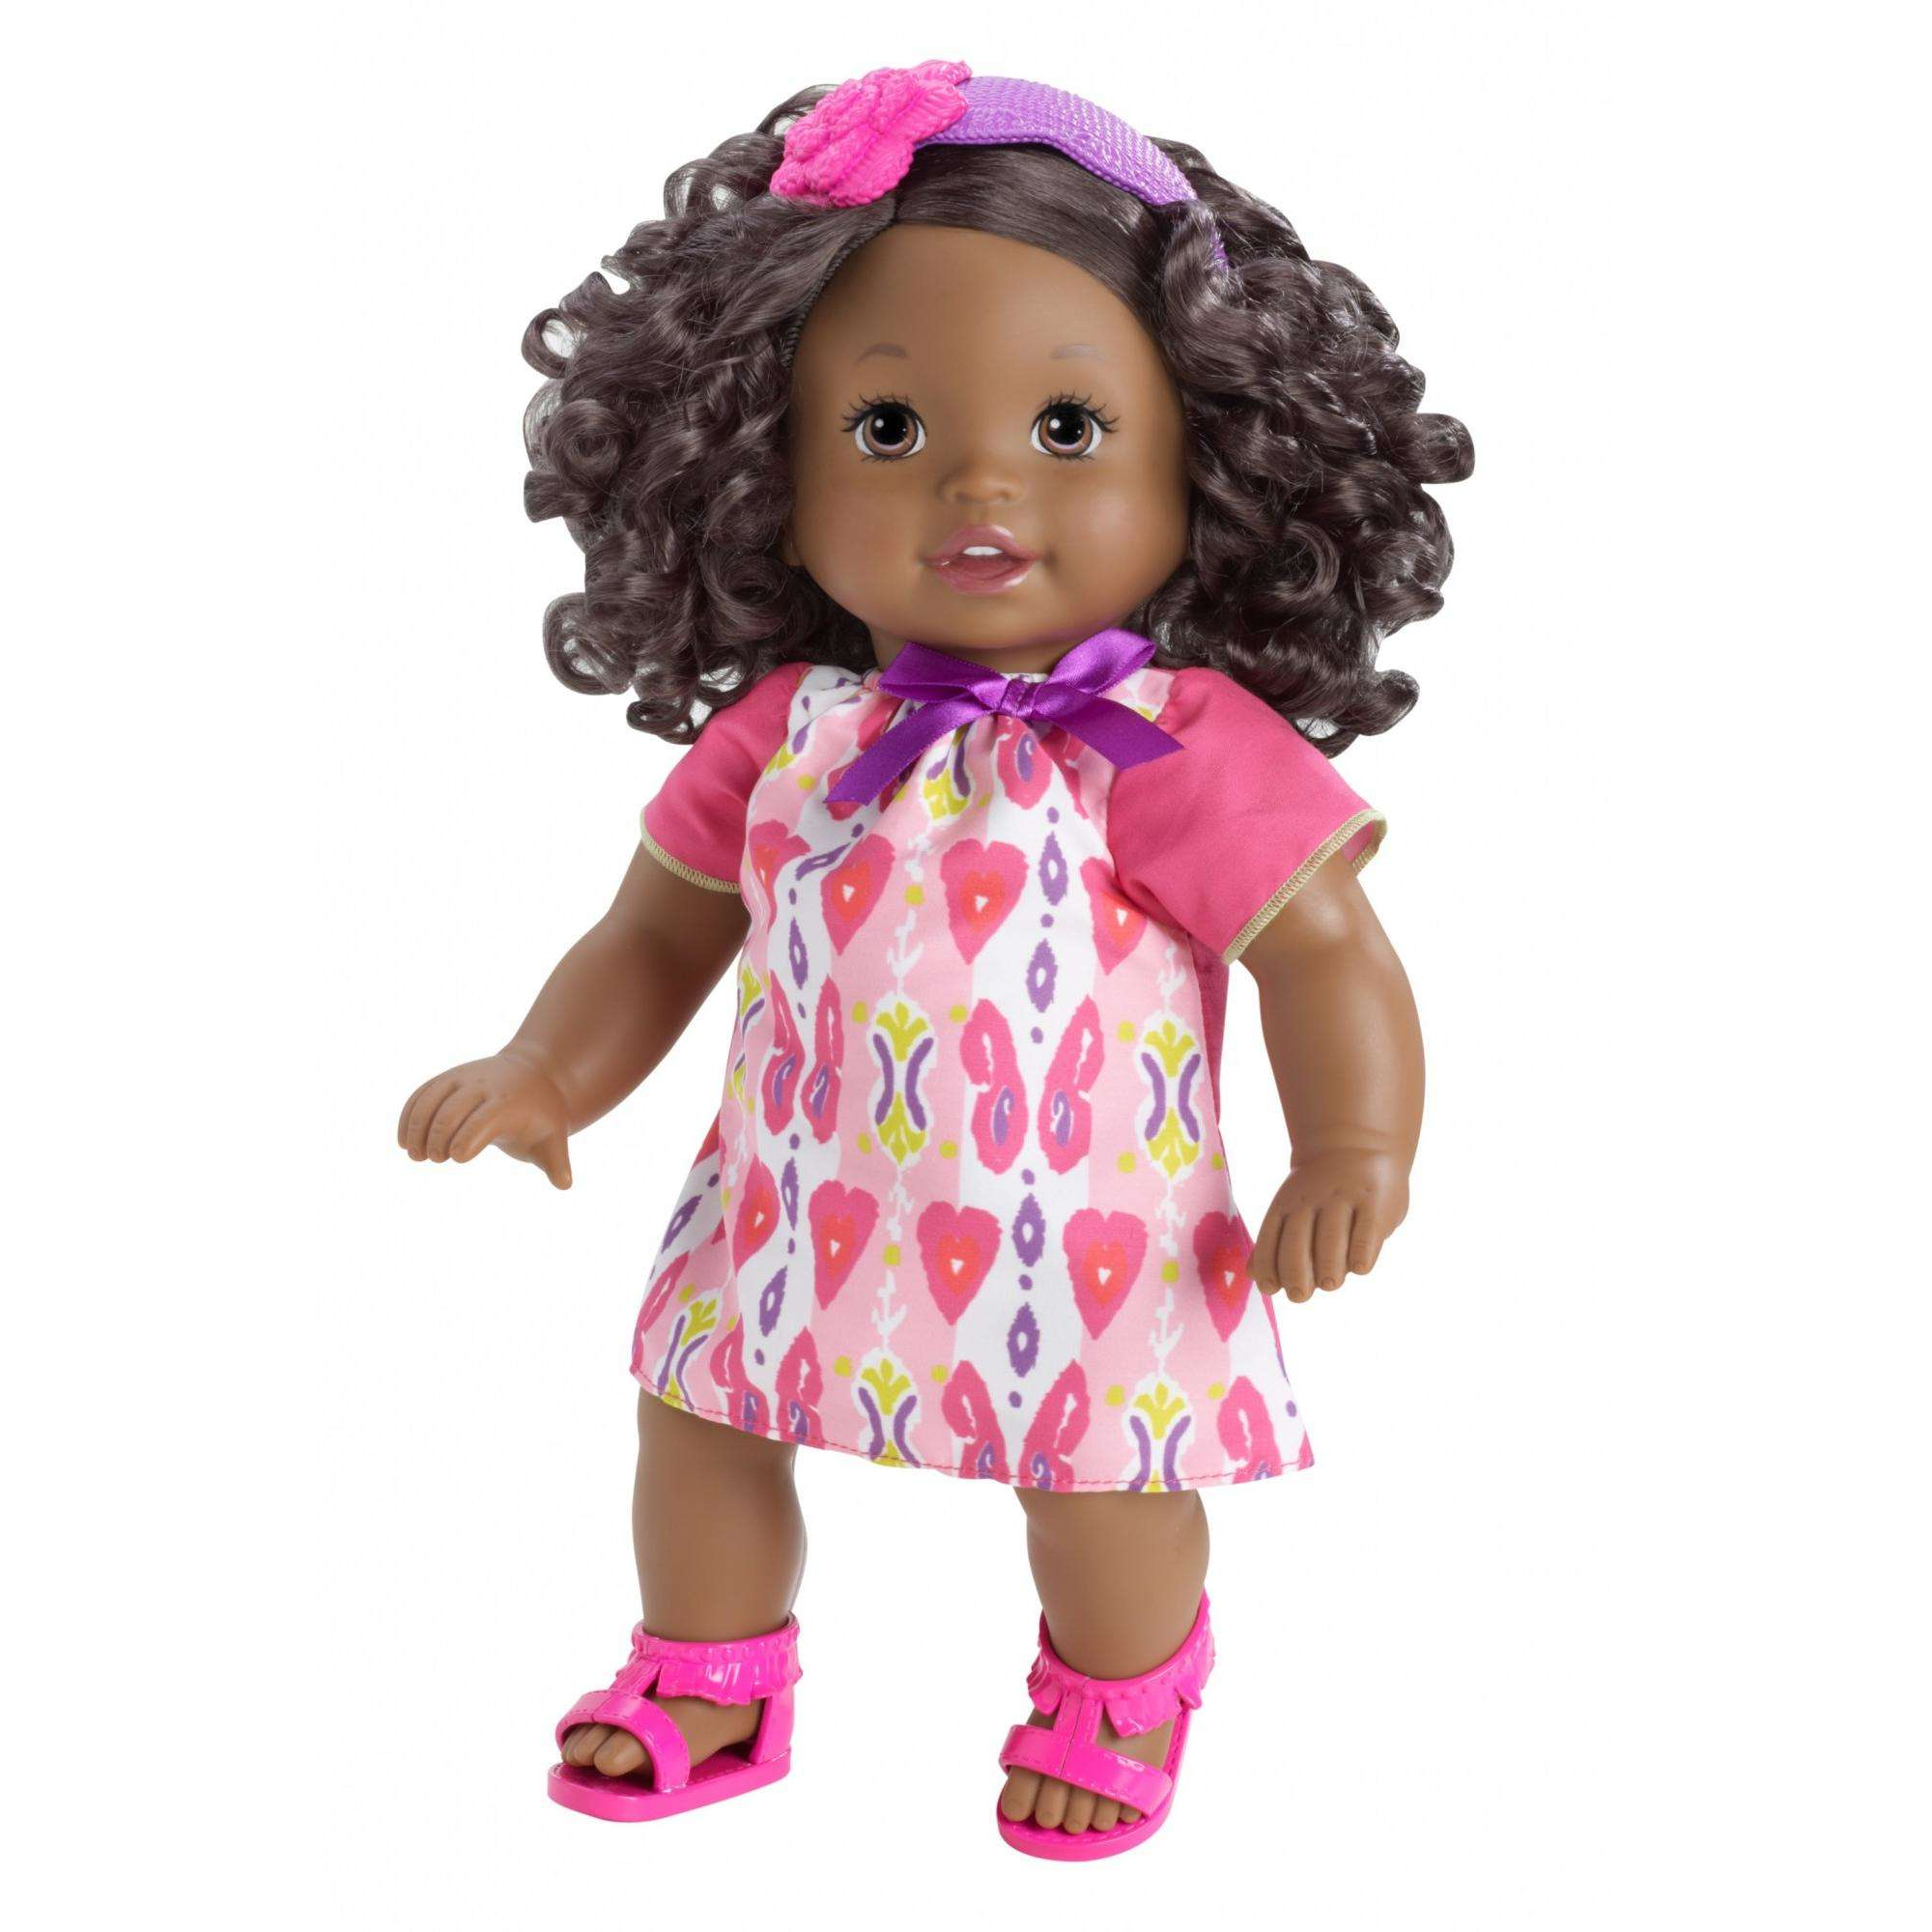 Mattel Little Mommy Sweet as Me Doll, African American